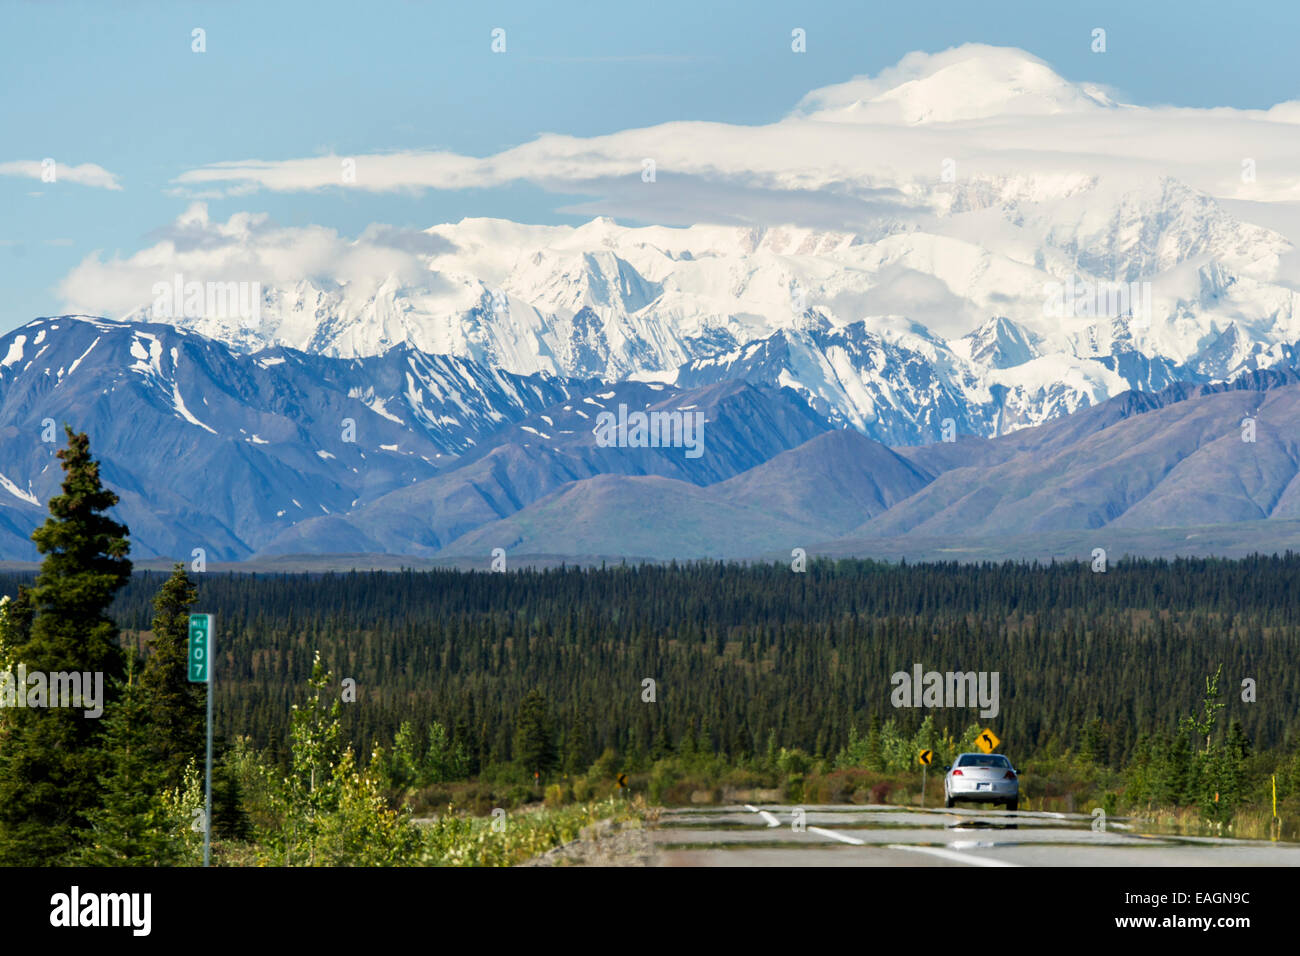 Mt  Mckinley Viewed From George Parks Highway  Interior Alaska Stock     Mt  Mckinley Viewed From George Parks Highway  Interior Alaska  Summer